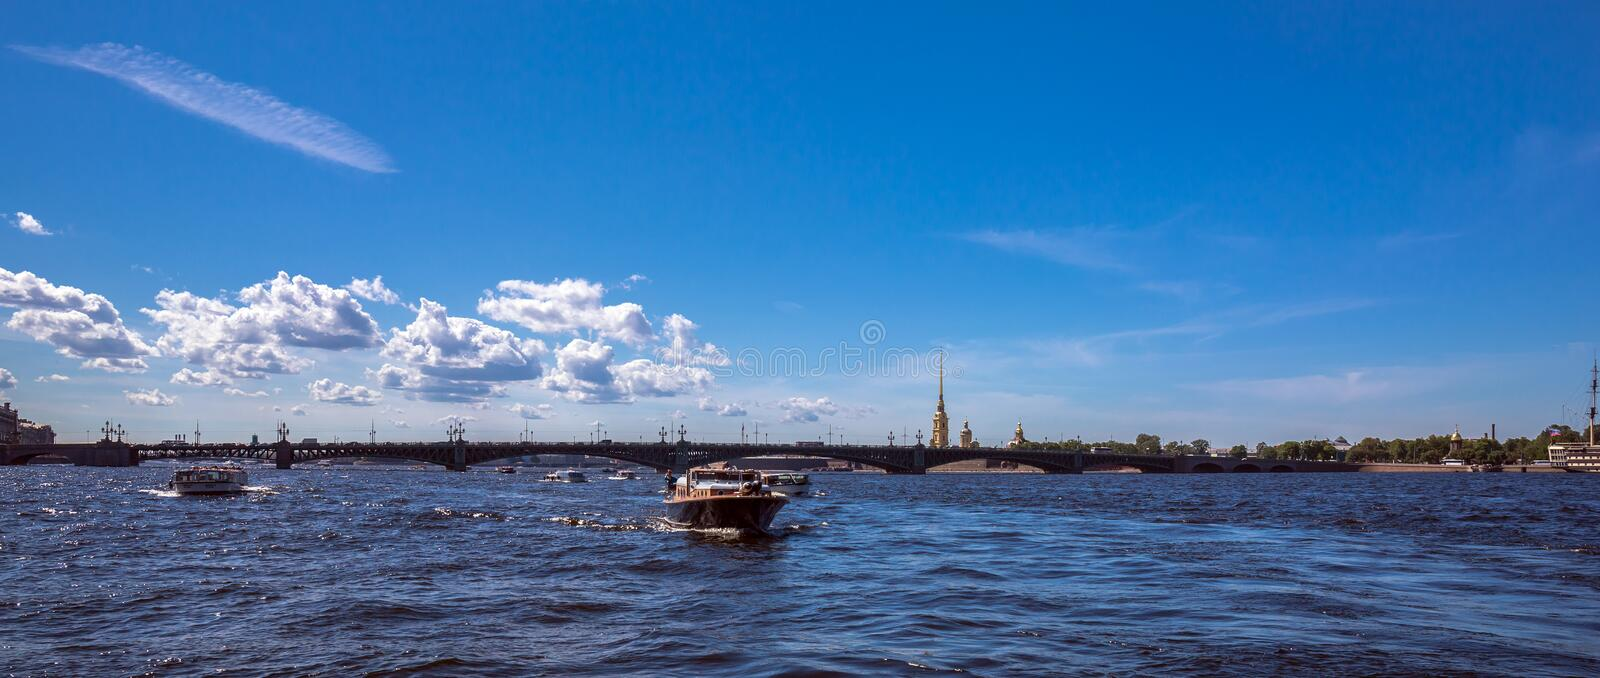 Boat trip by Neva river of Saint Petersburg under blue summer sky with bright clouds royalty free stock photography